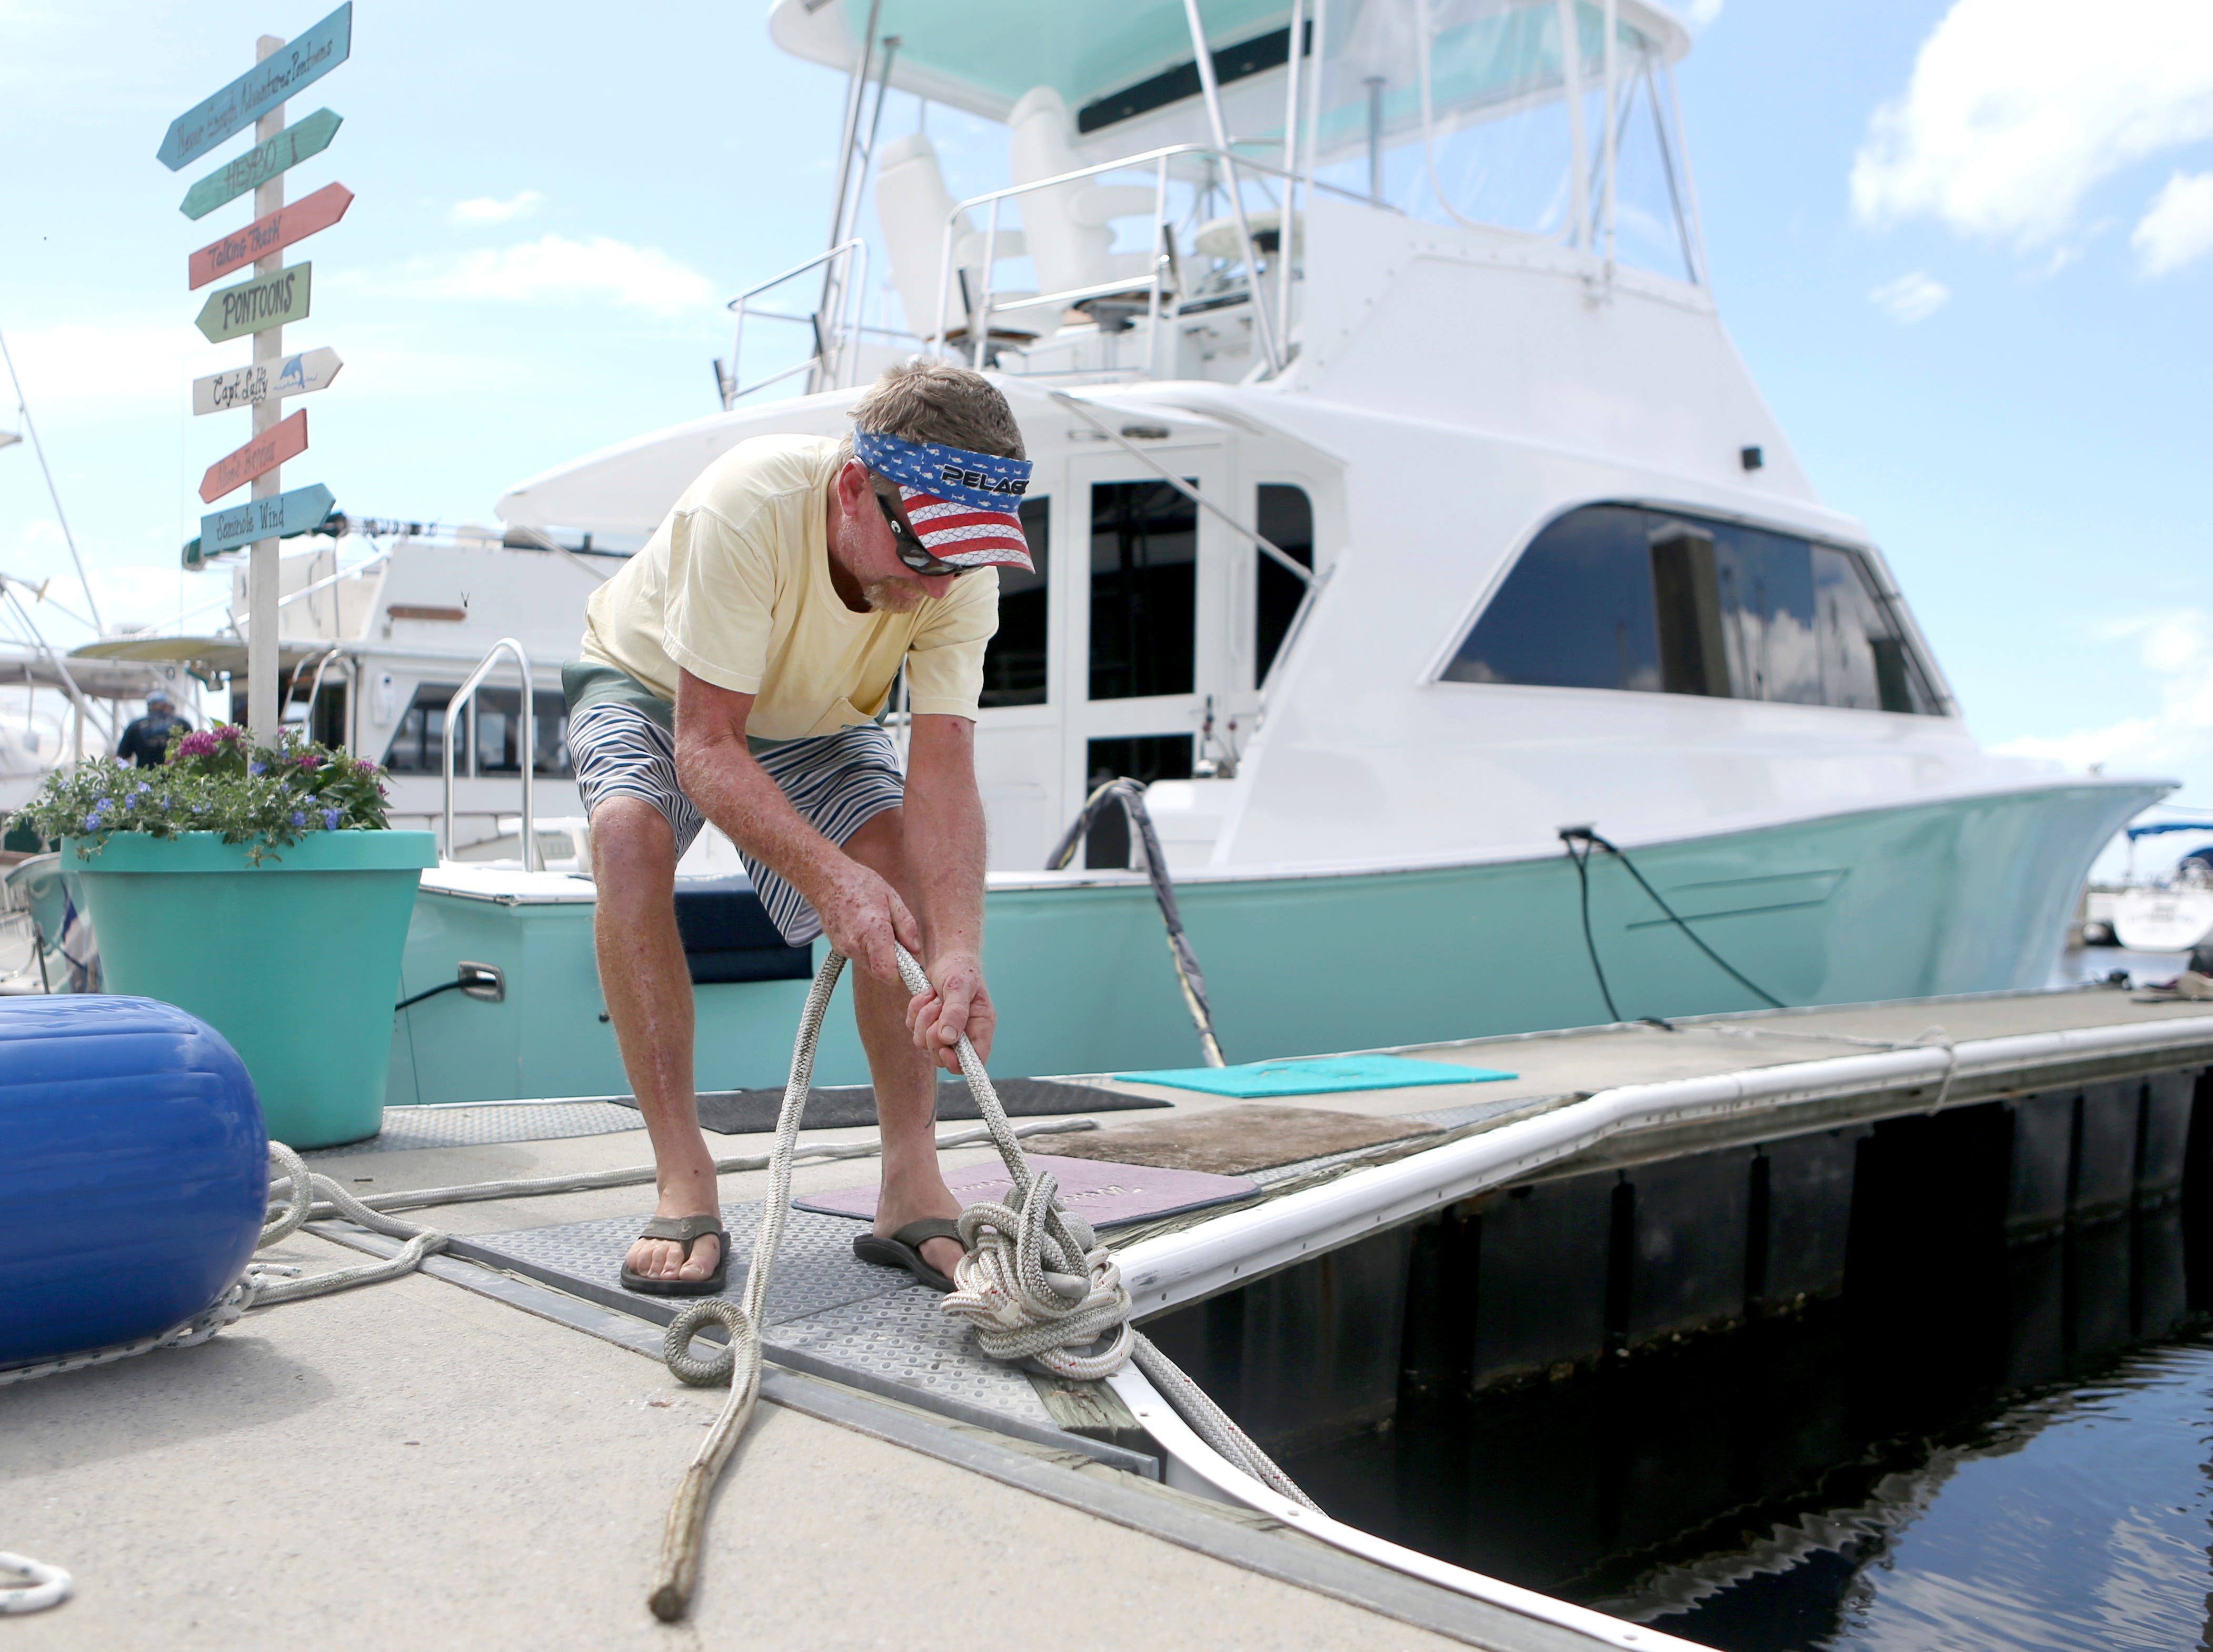 Rob Docko ties a knot while securing his boat at the St. Andrews Marina in Panama City, Fla., Monday, Oct. 8, 2018, to prepare for Hurricane Michael.